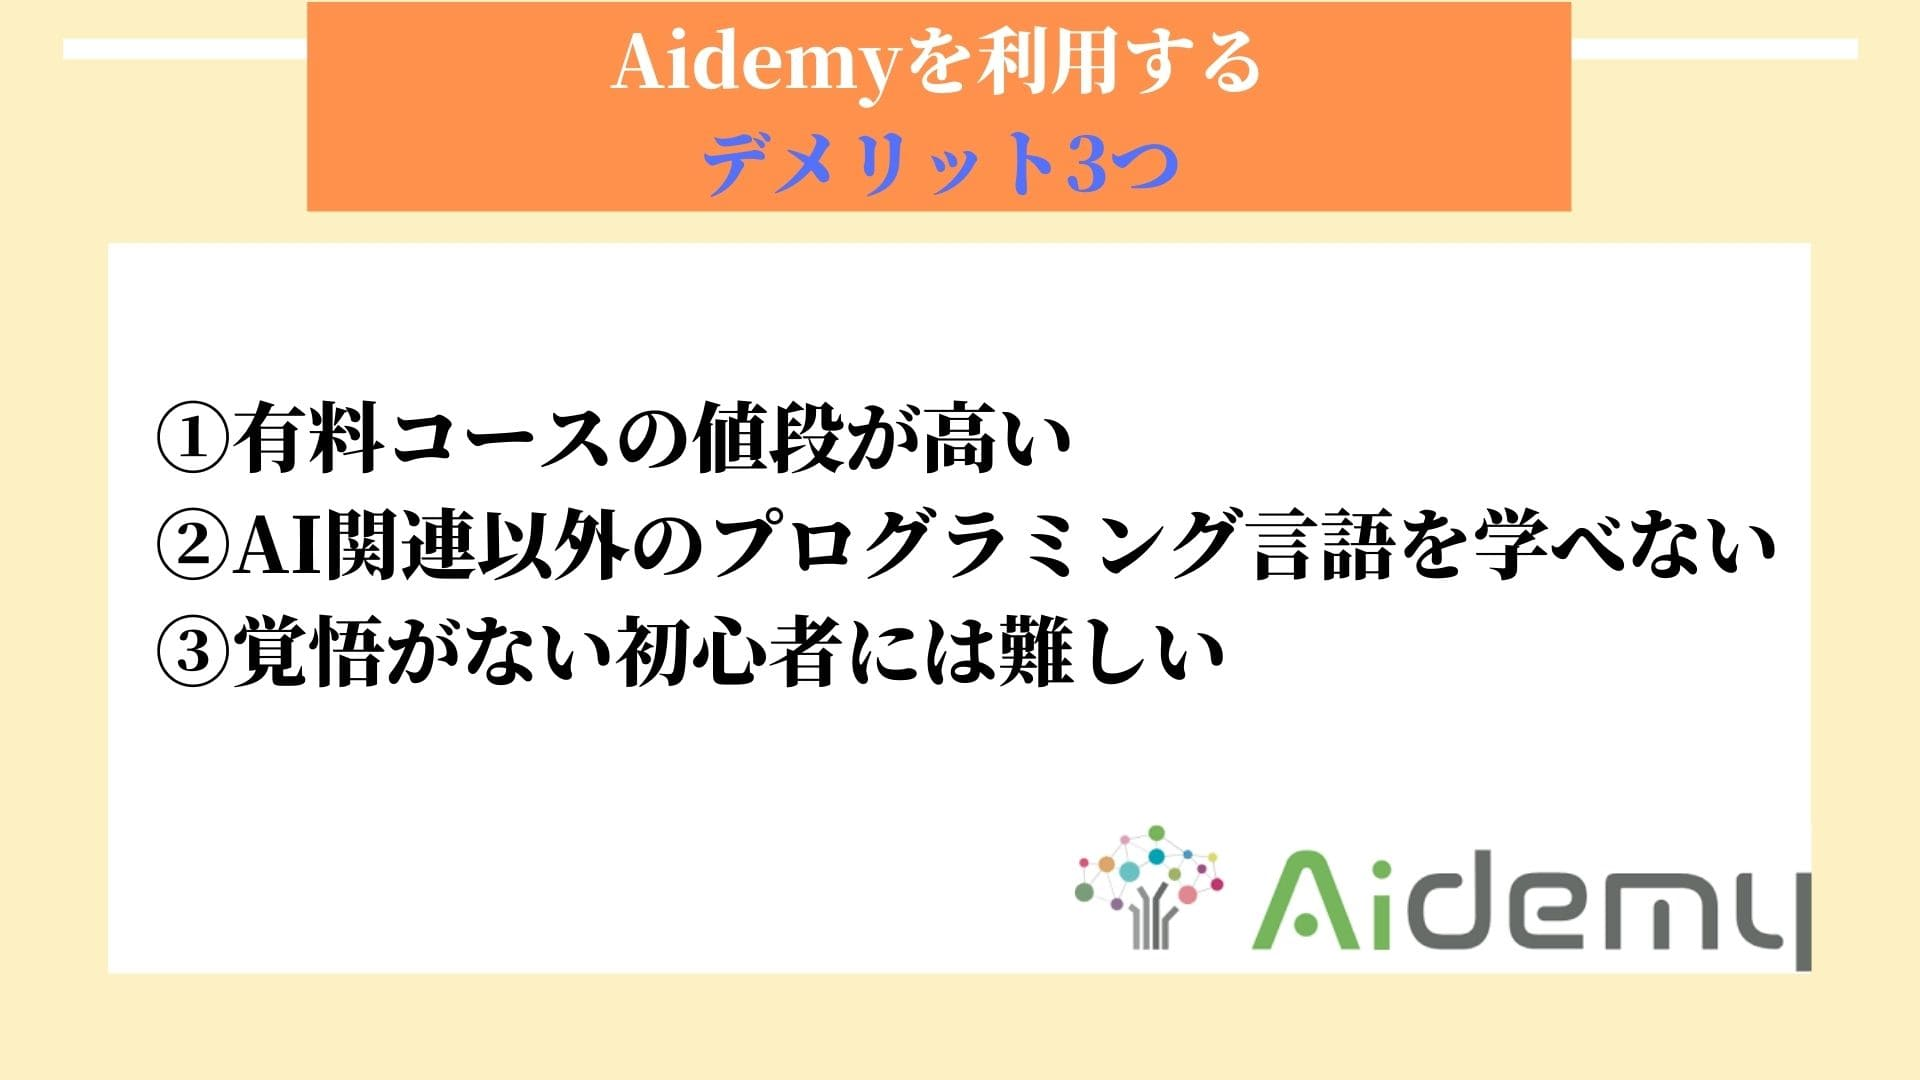 Aidemy デメリット